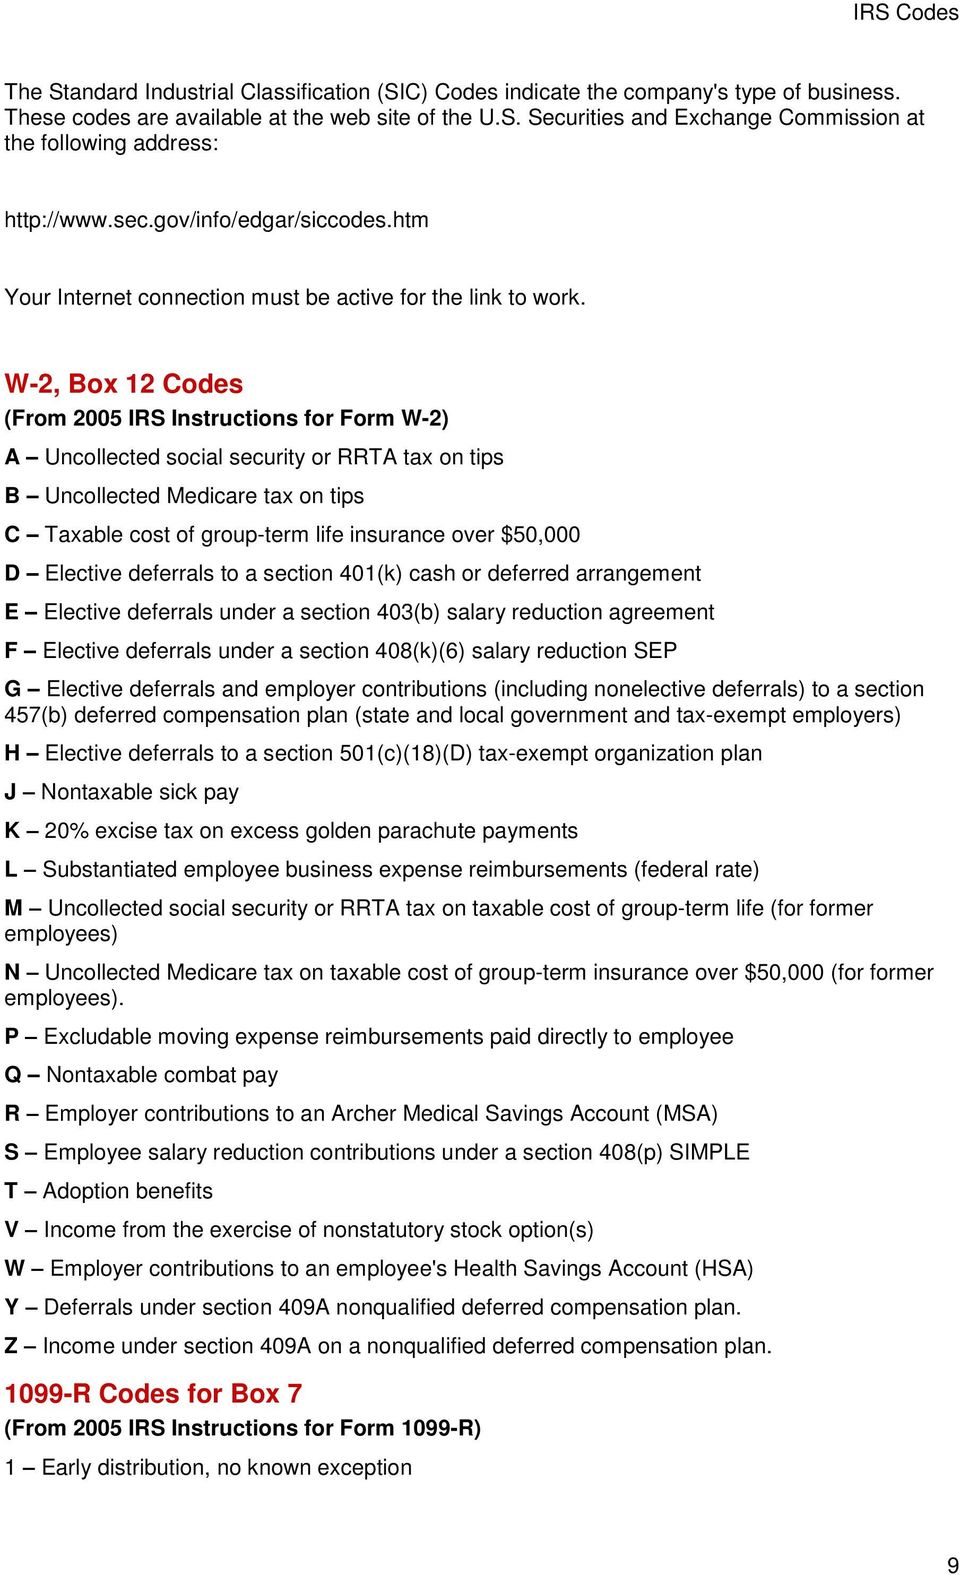 Principal Business Or Professional Activity Codes For